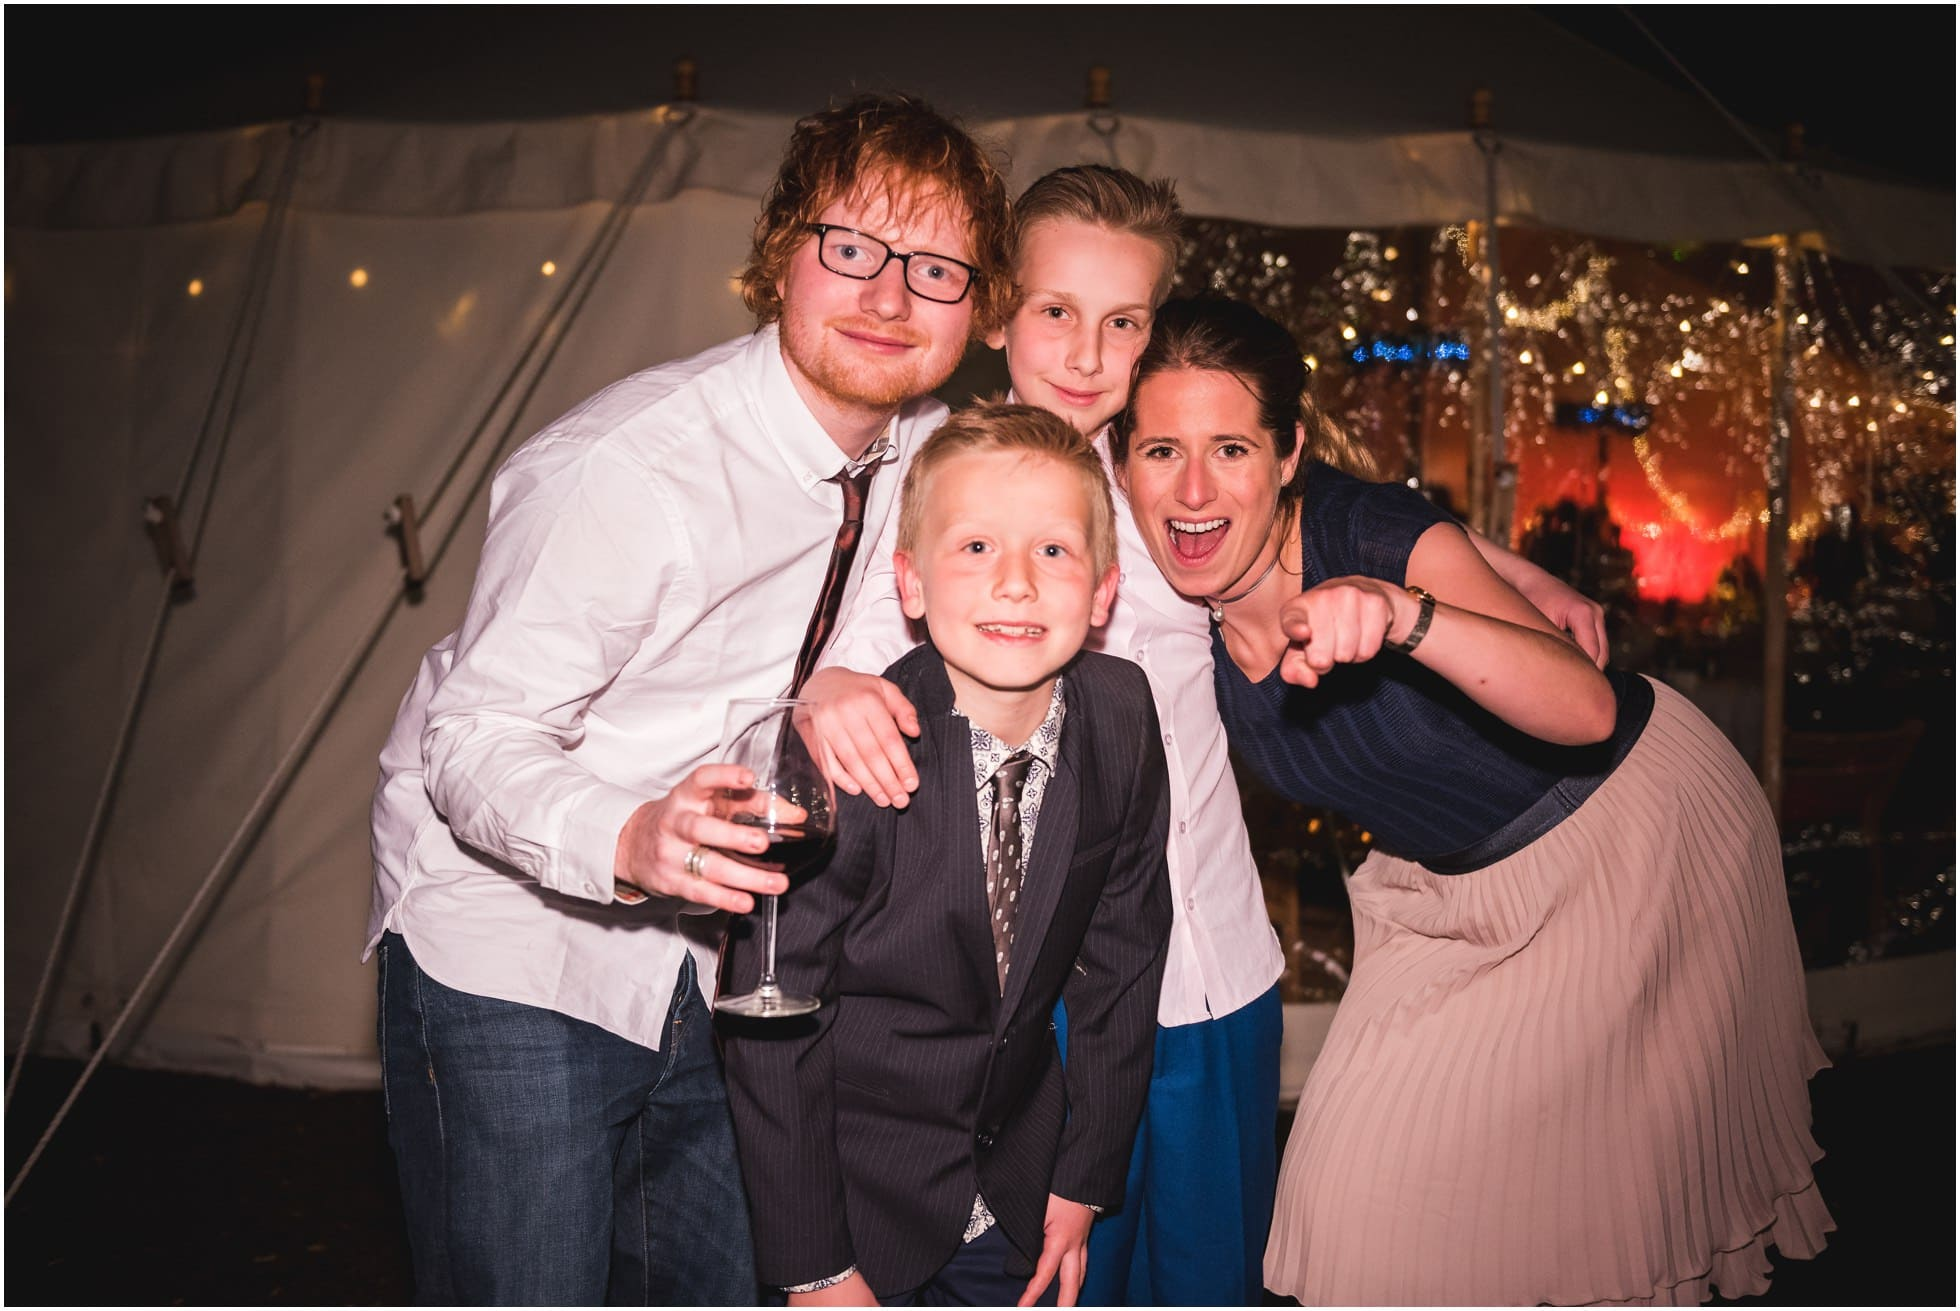 Ed Sheeran posing with his lovely girlfriend and relatives